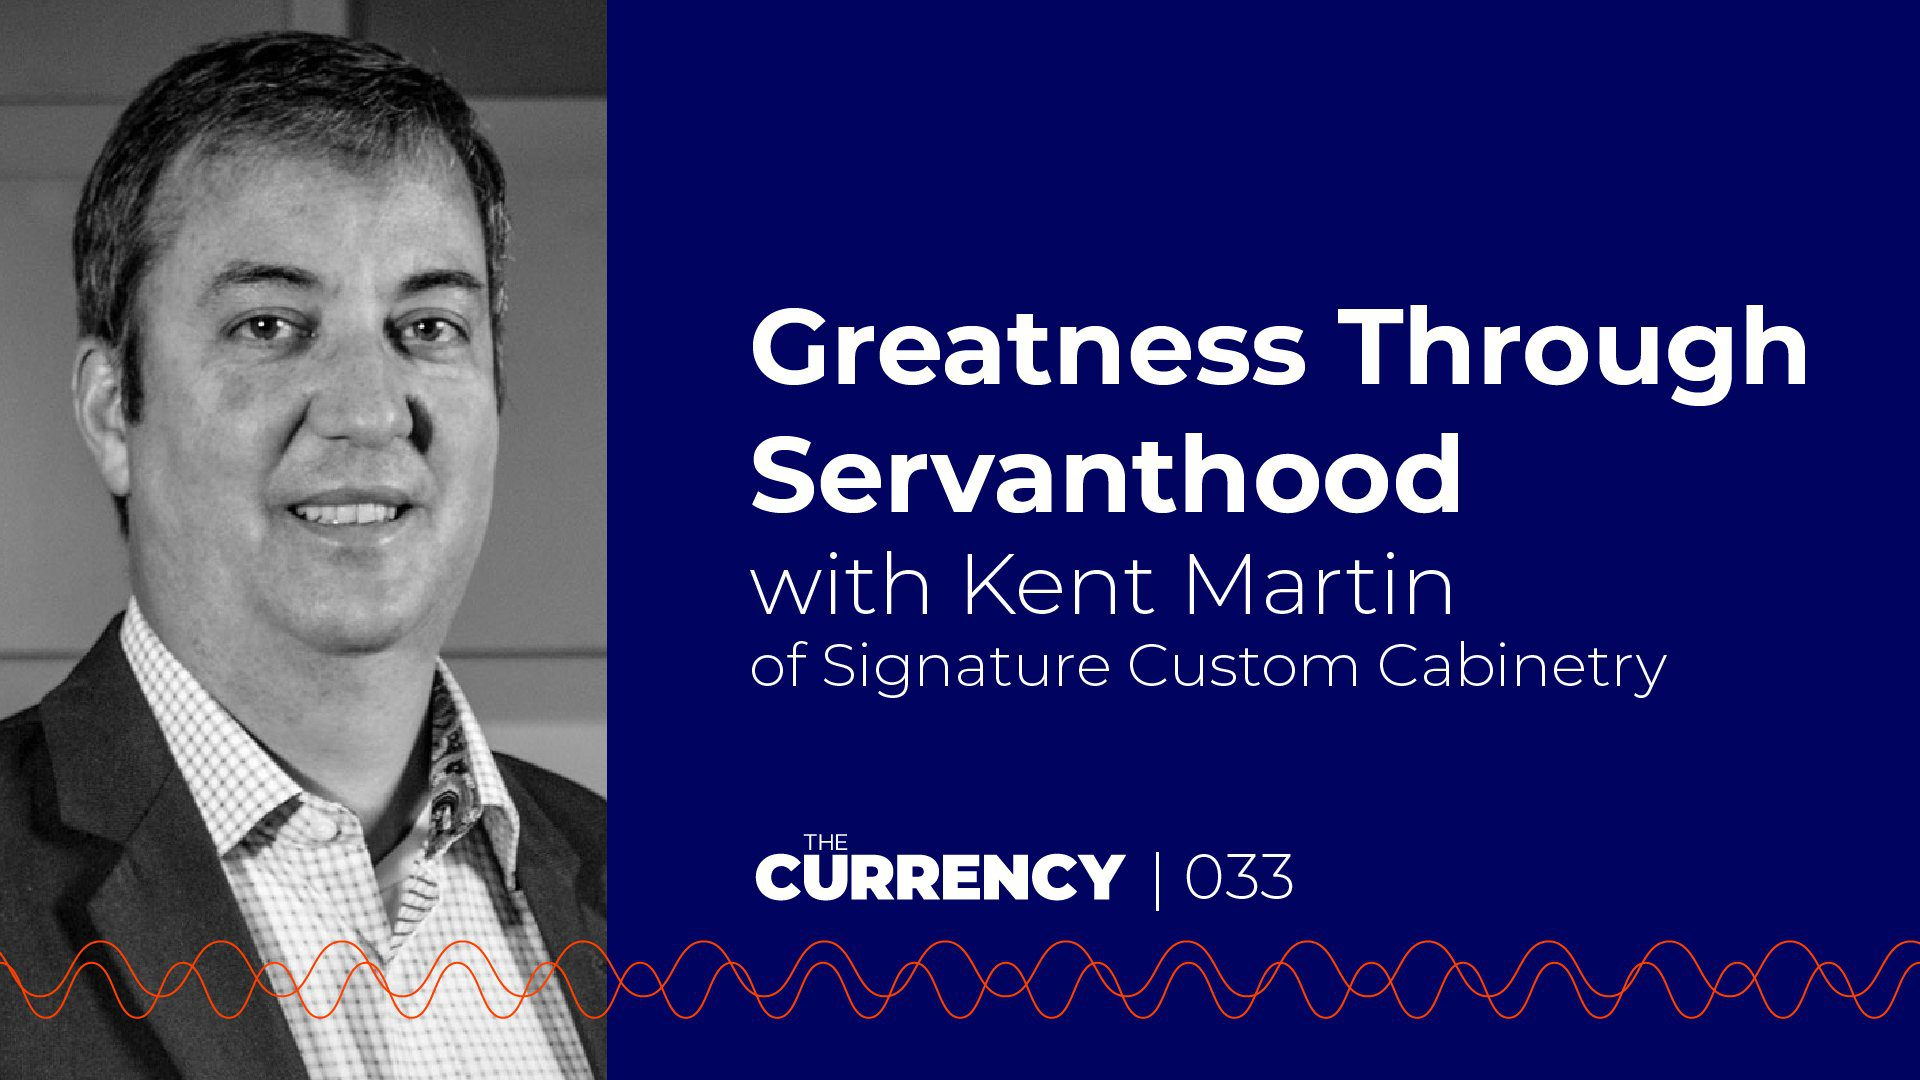 Kent Martin of Signature Custom Cabinetry on The Currency